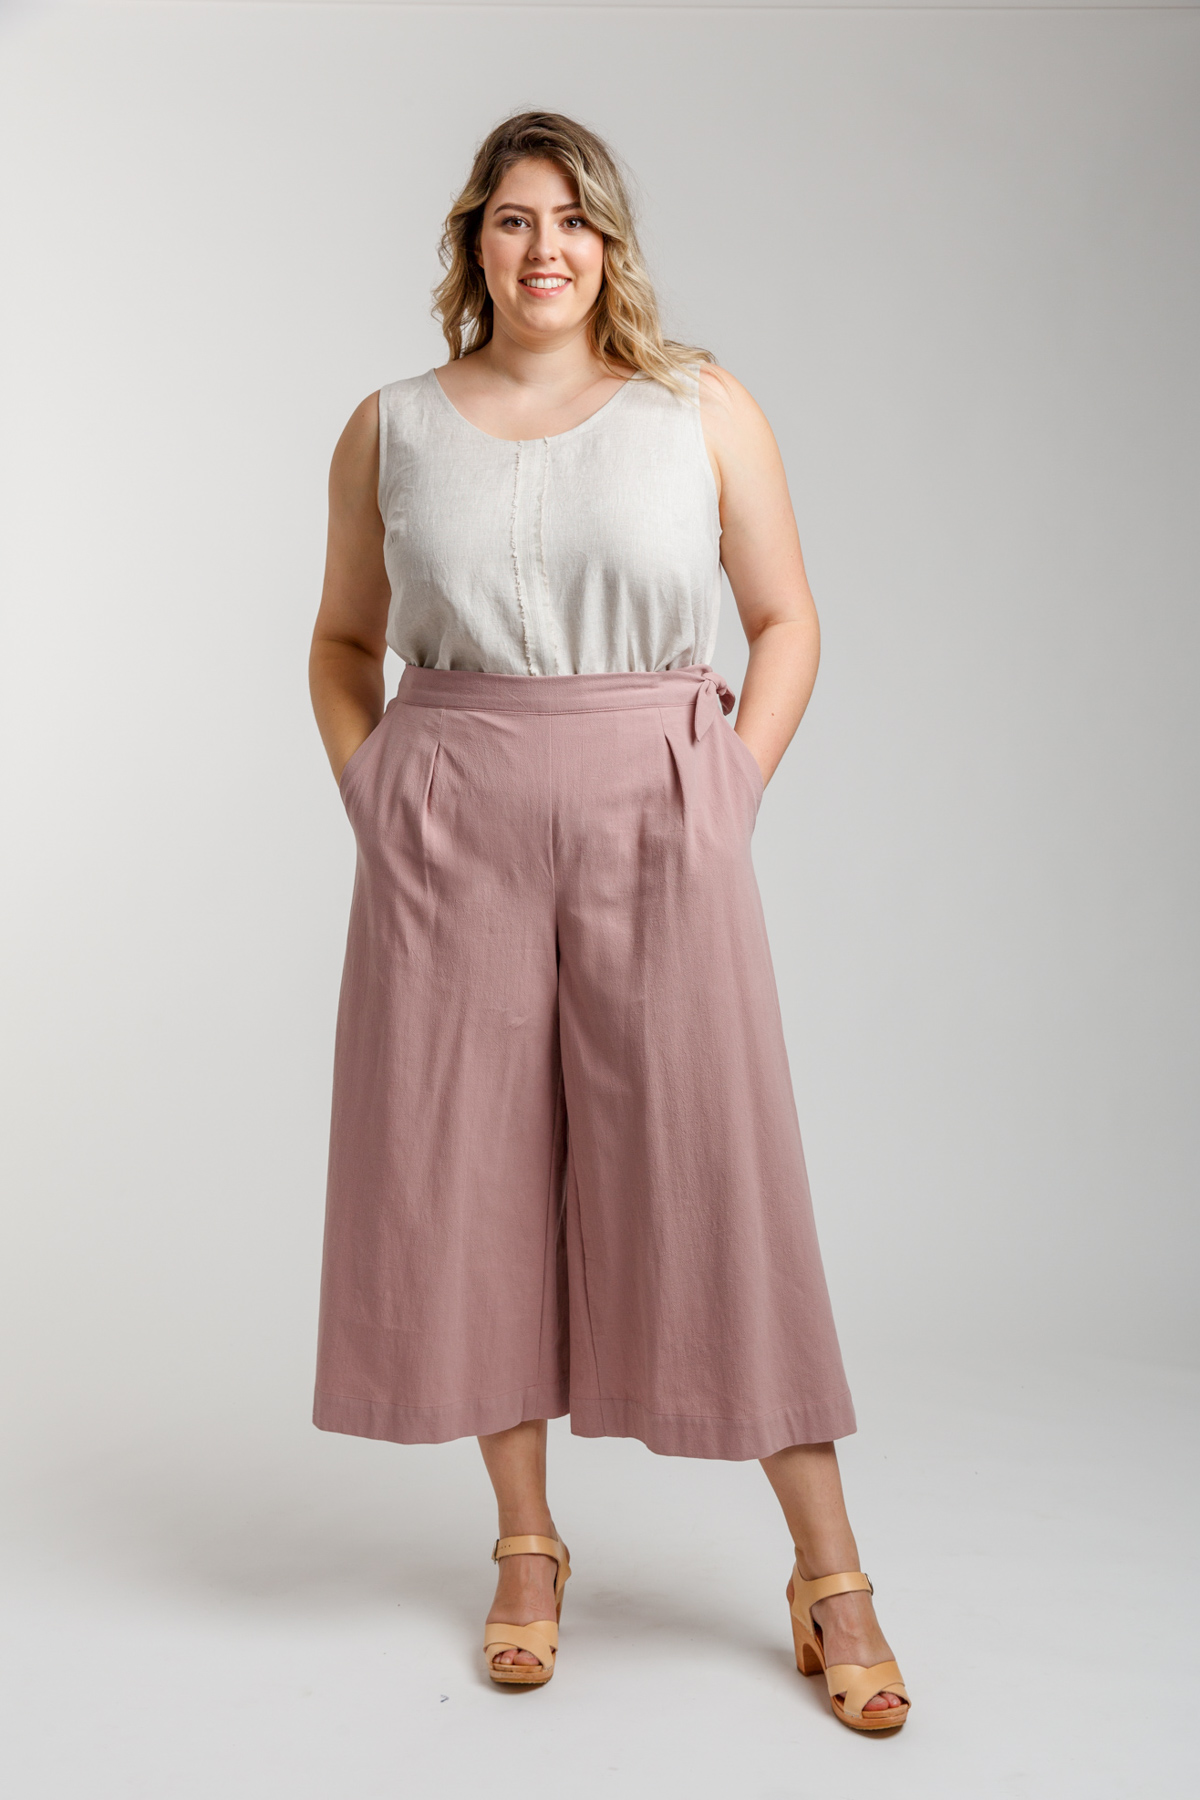 Megan Nielsen Curve Flint pants and shorts